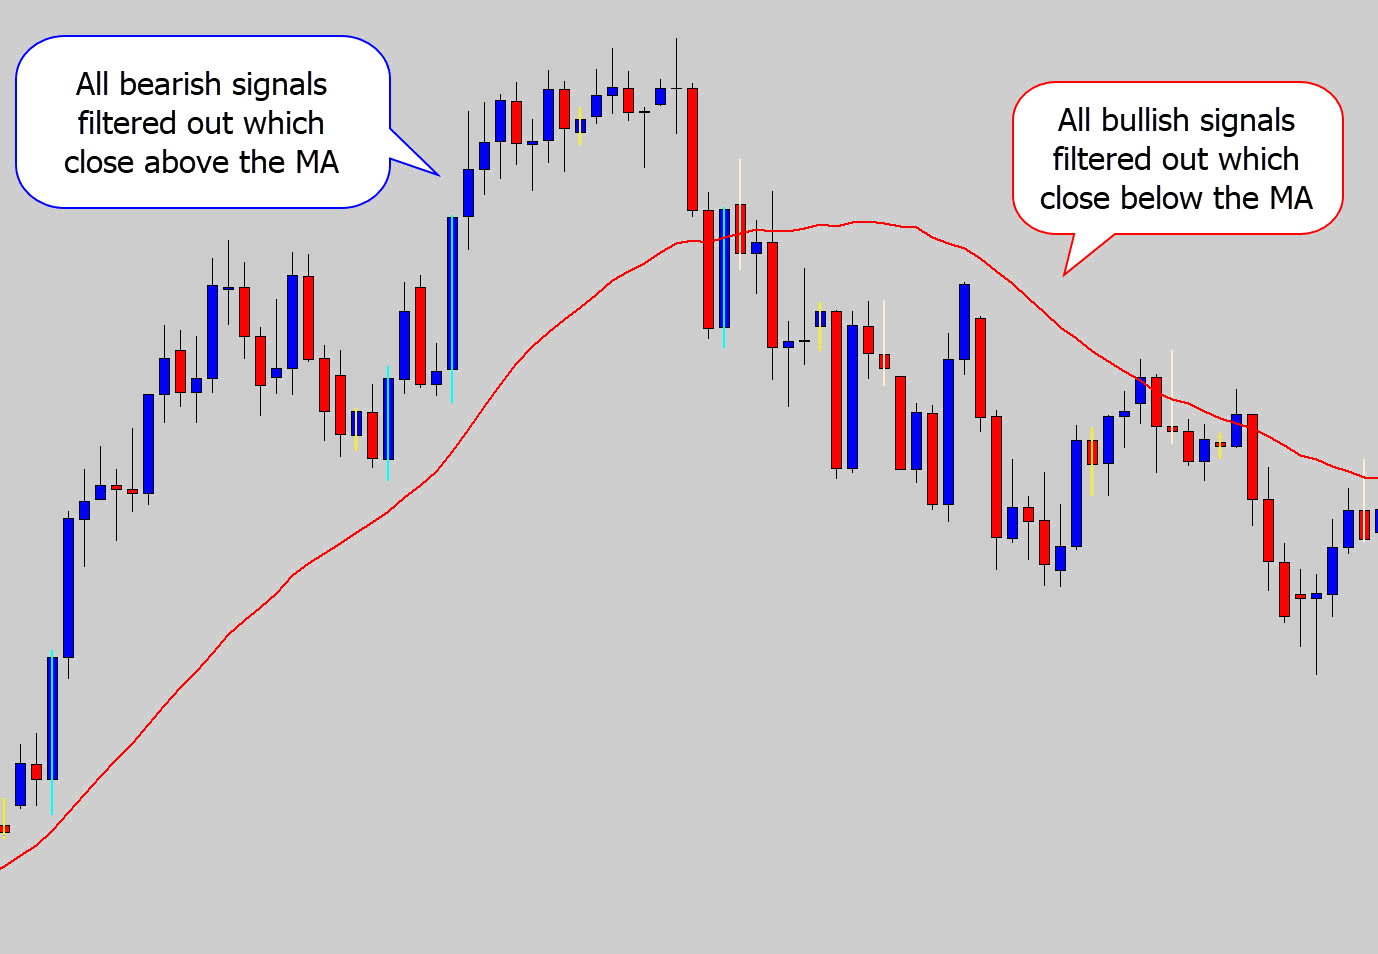 moving average filtering